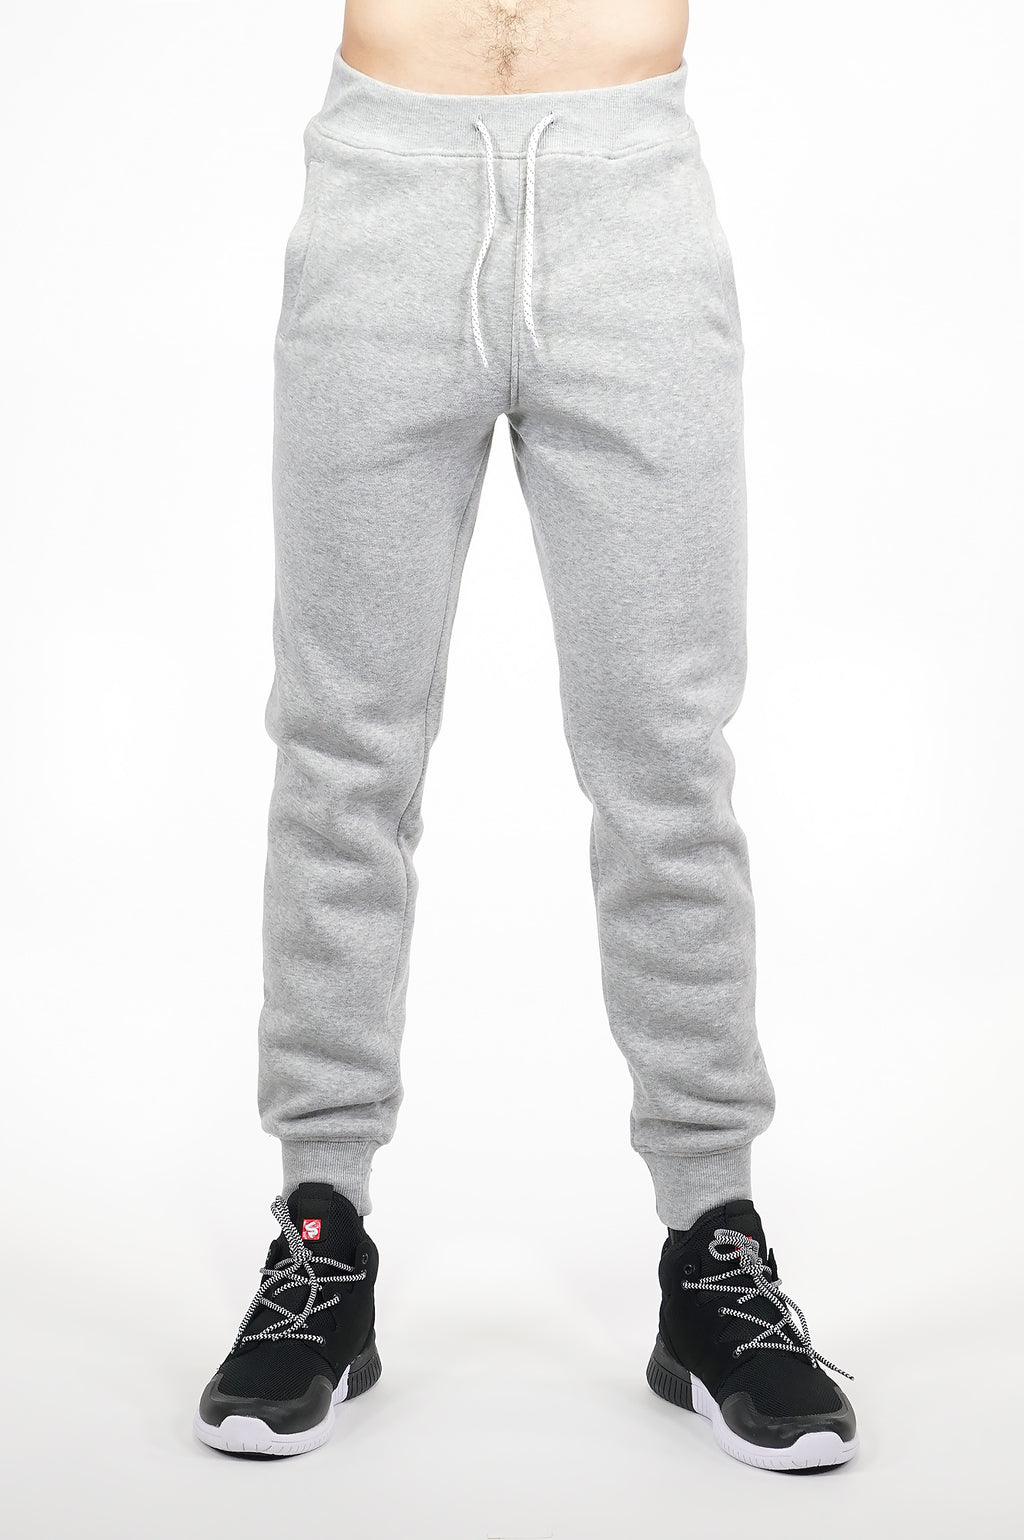 This picture is front of jogger pant. It had bright color with white drawstring